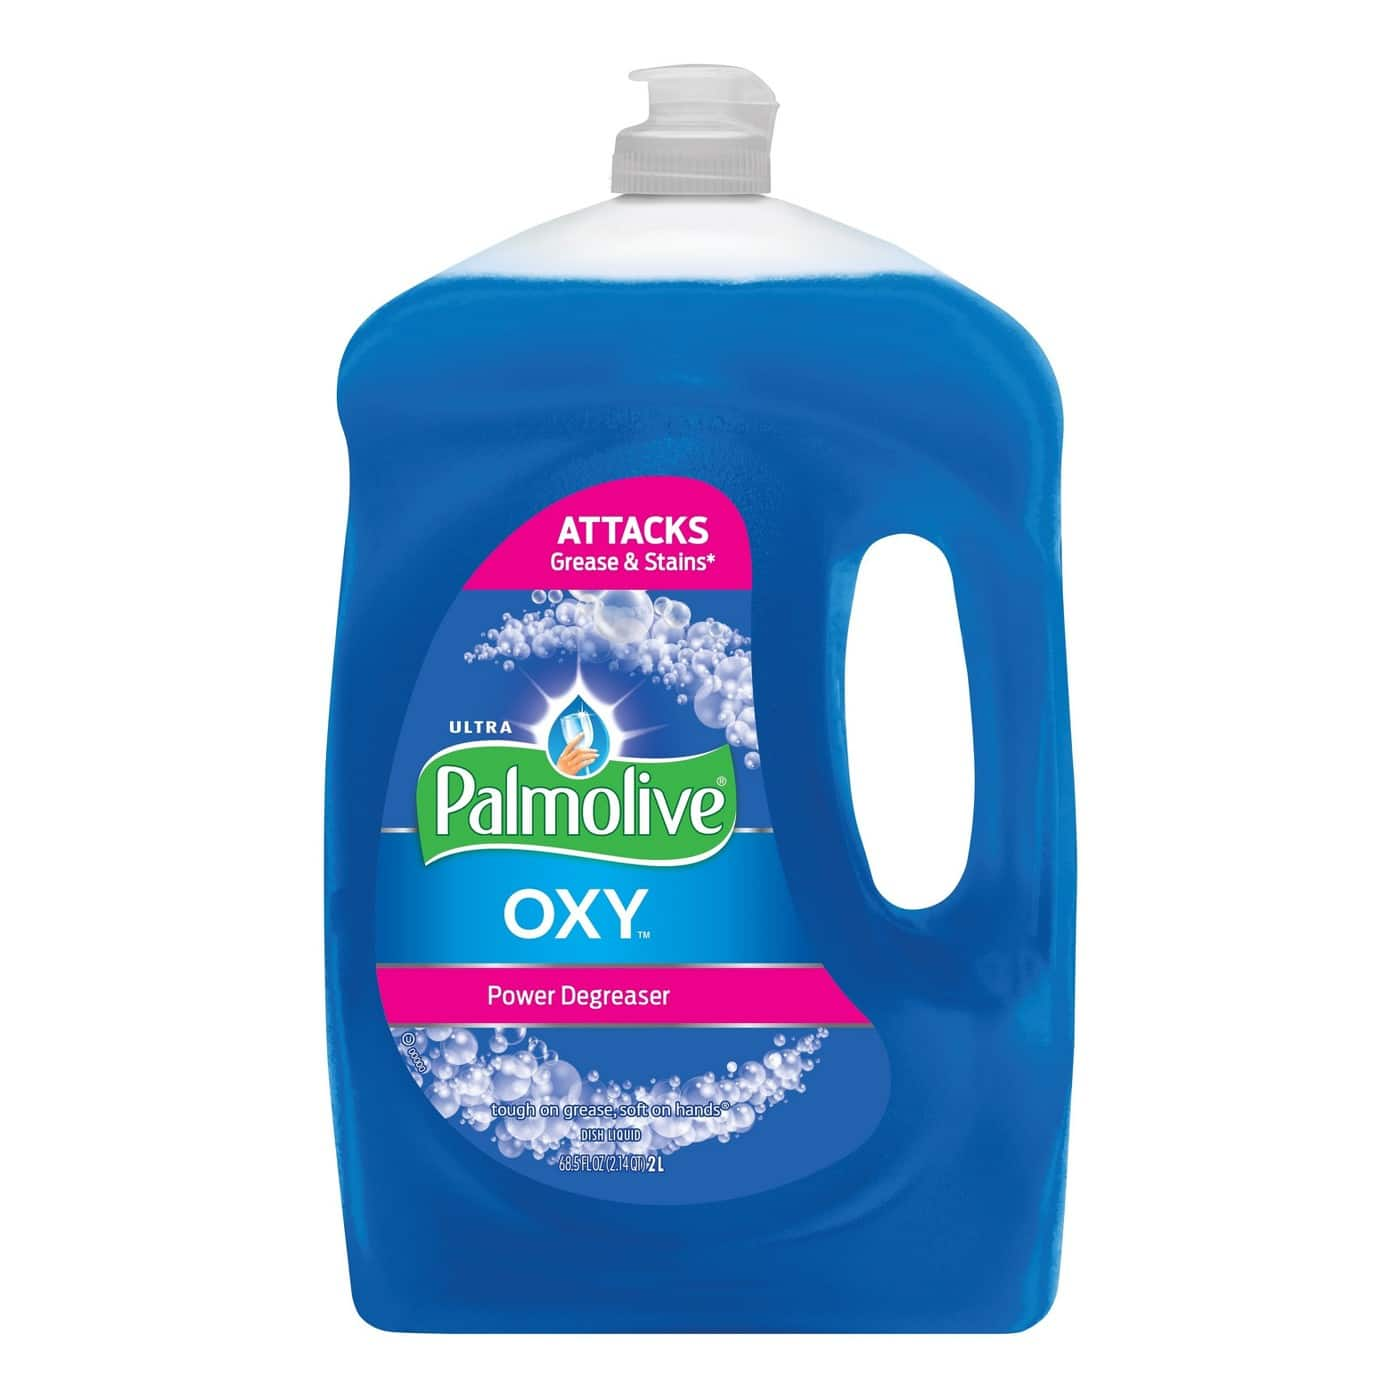 2-Ct 68.5 oz Palmolive Ultra Liquid Dish Soap (Oxy Power Degreaser) $12 at Target with Free $5 Gift Card